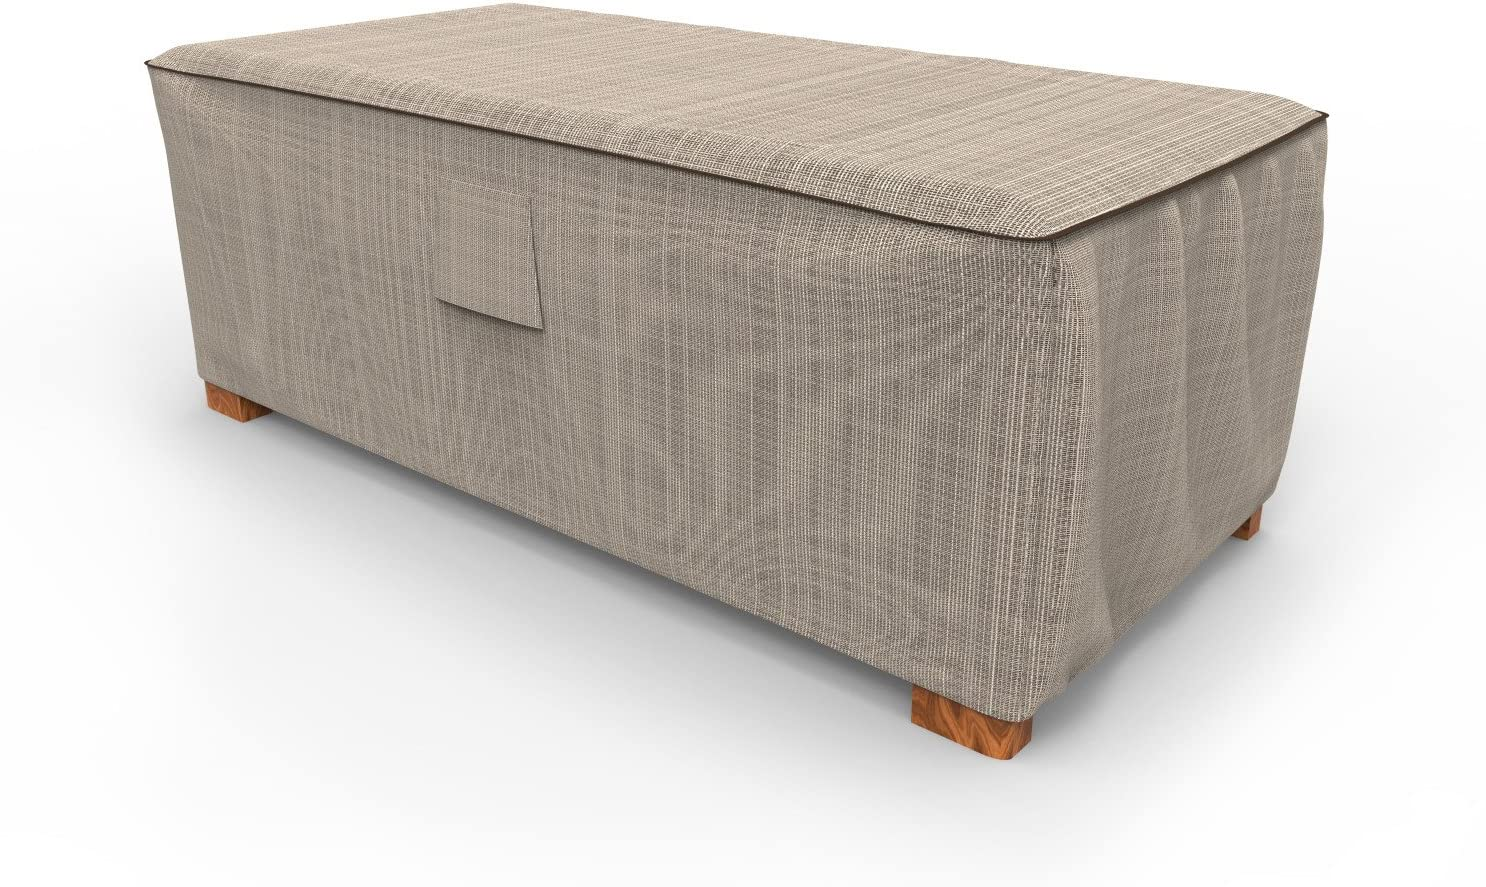 Budge P4A03PM1 English Garden Slim Patio Ottoman/Coffee Table Cover Heavy Duty and Waterproof, Medium, Two-Ton Tan